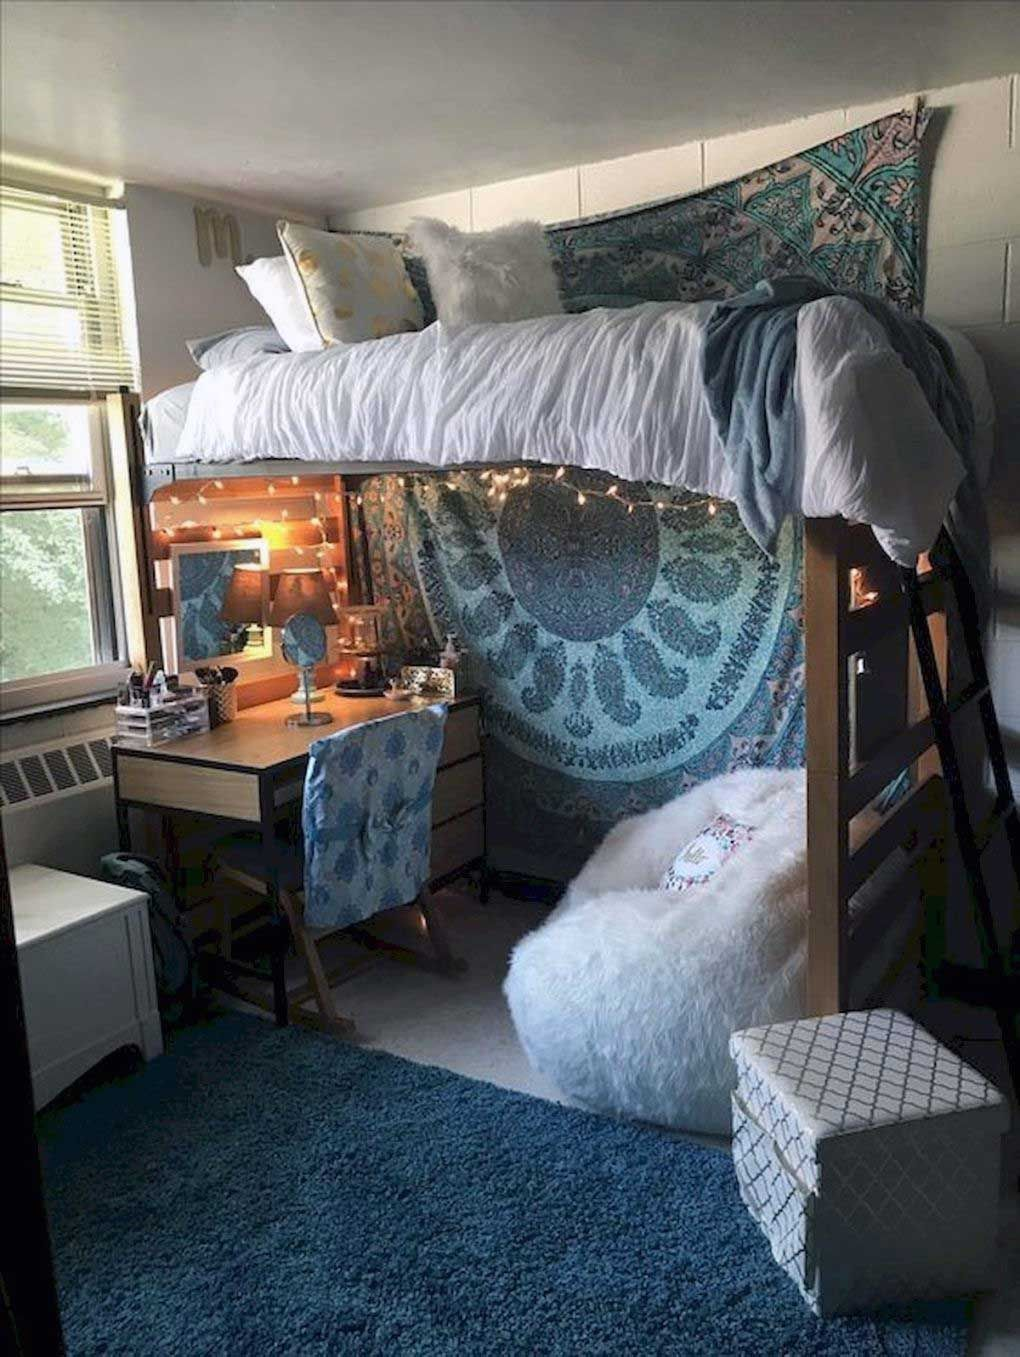 Bedroom Room Decor Ideas Dorm